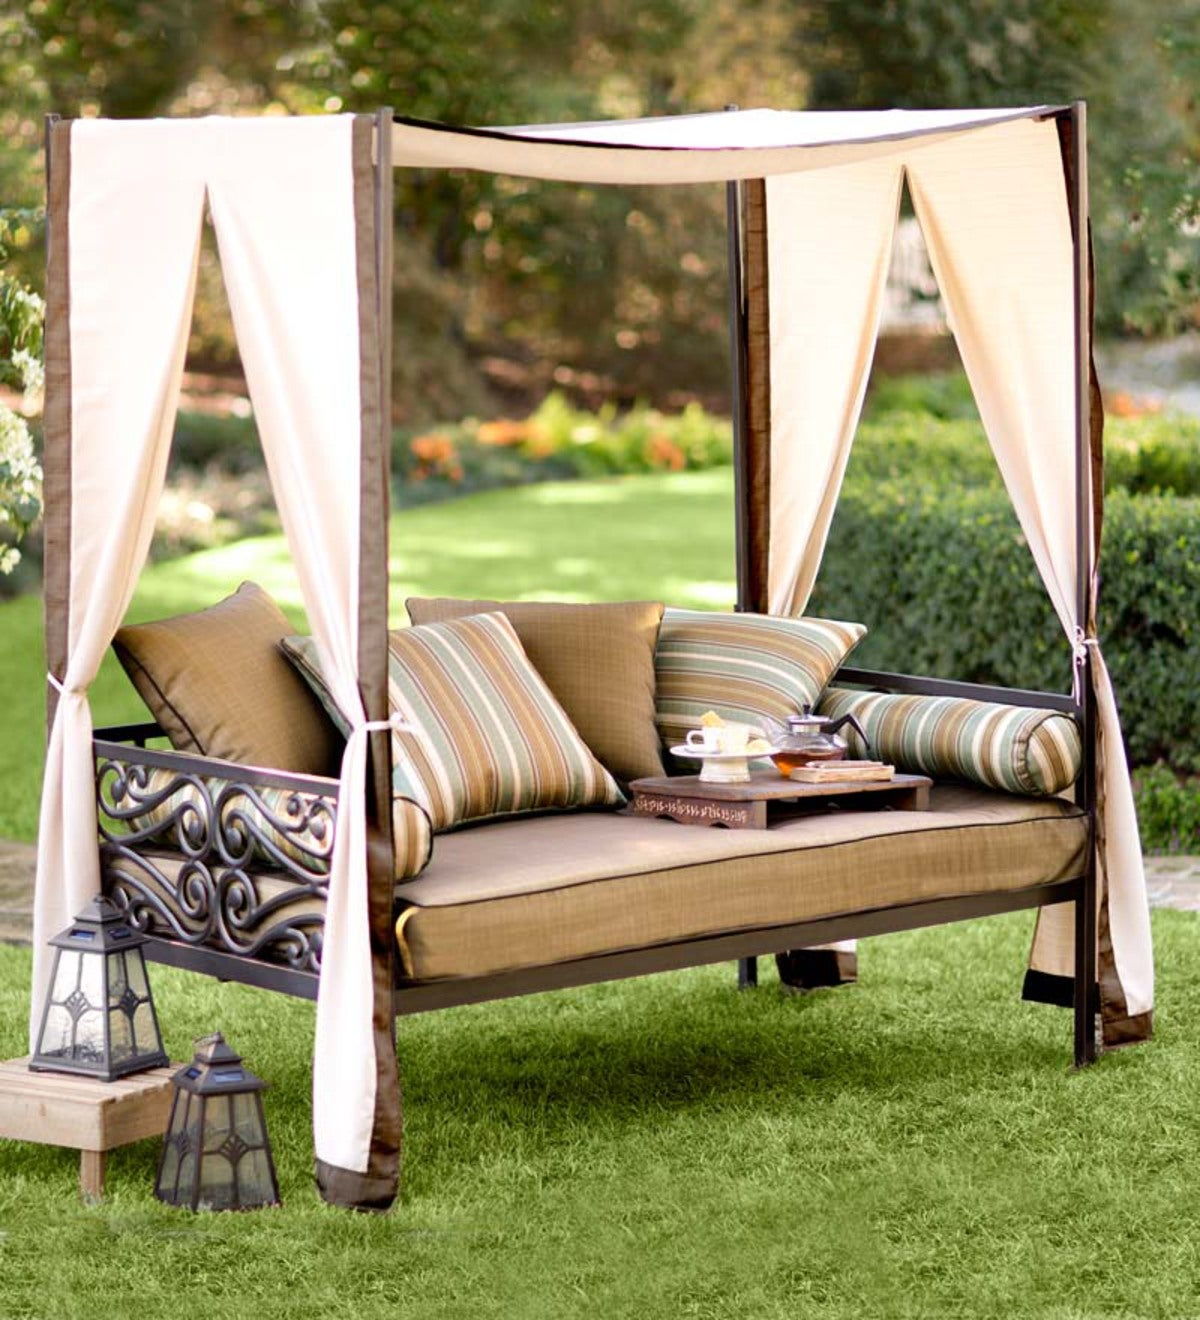 Outdoor Lounger With Canopy And Pillows Plowhearth